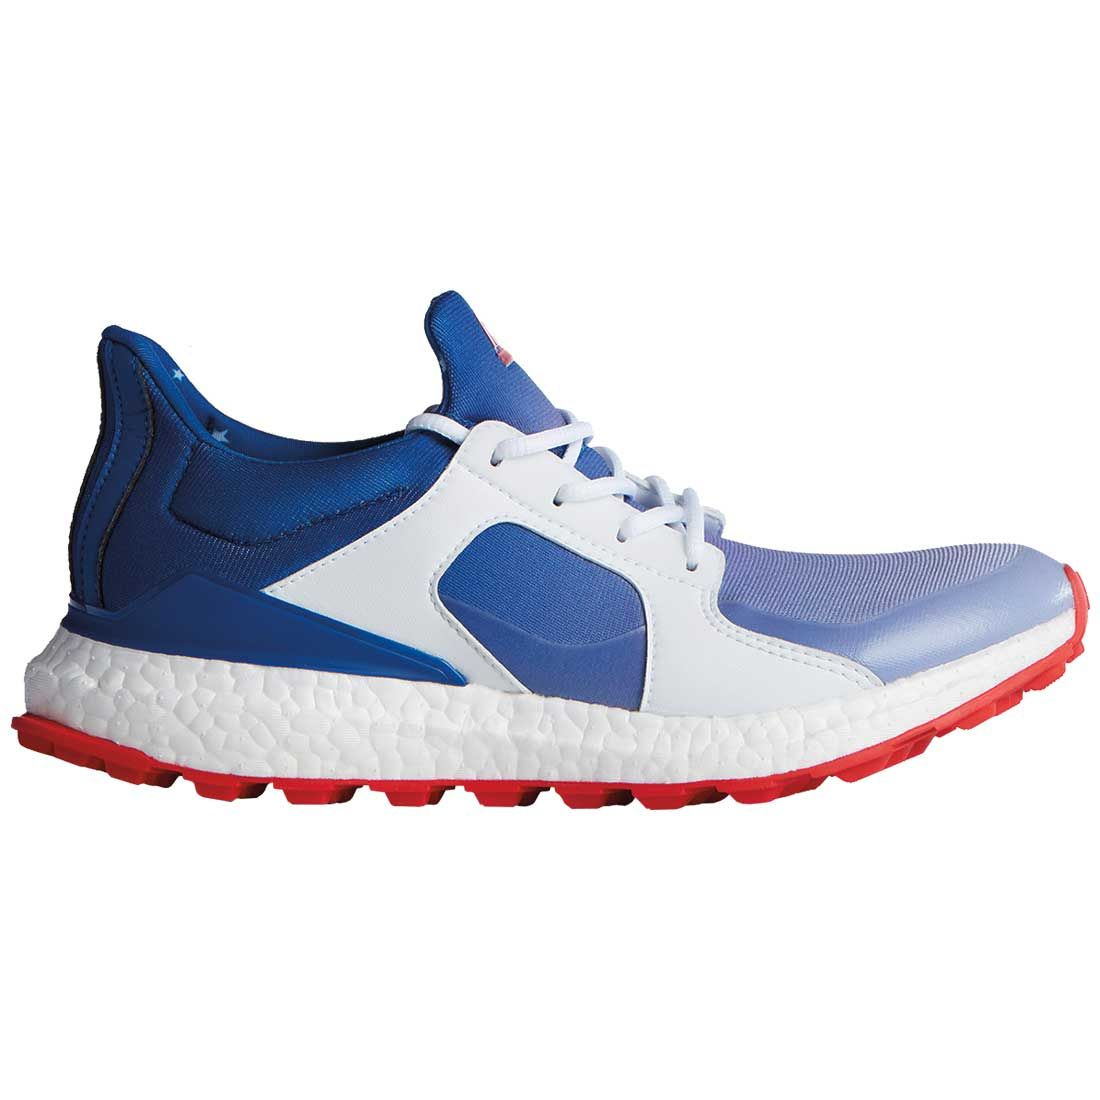 Red/White/Blue Golf Shoes